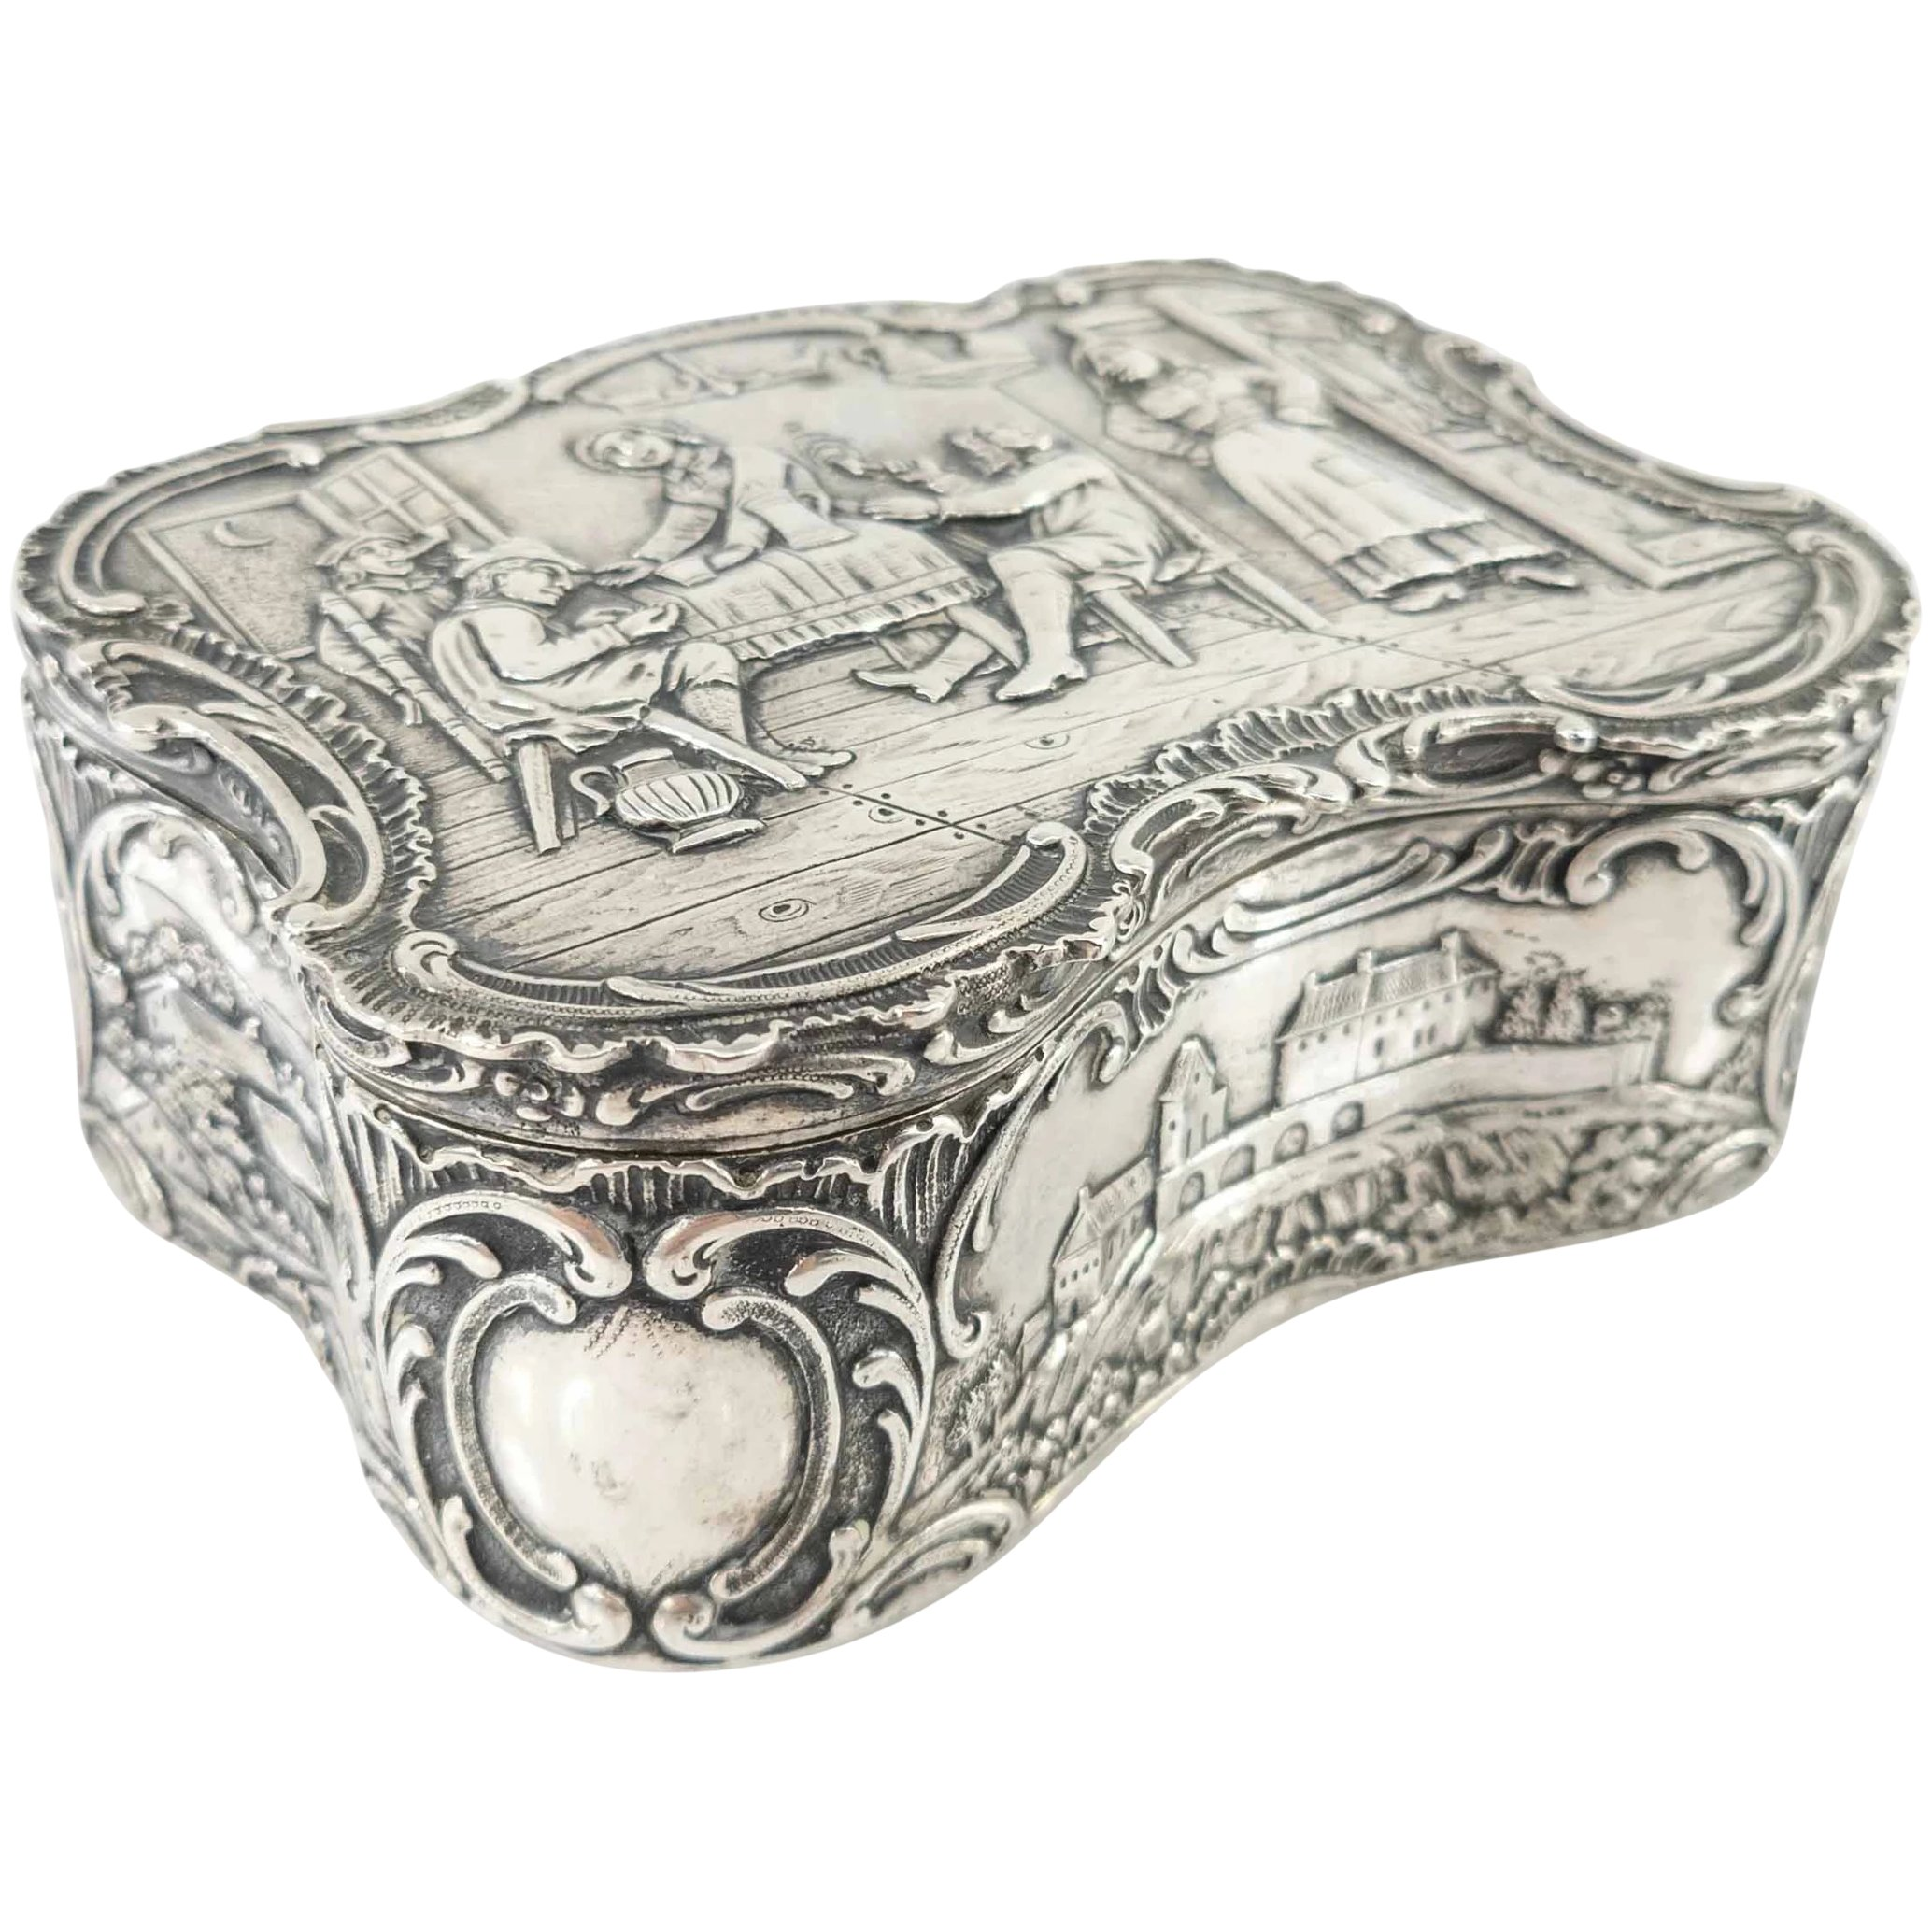 A Precious And Rare Highly Ornate Jewellery Box With Cherubs Containing A Silver Hummingbird Pendant Antique French Jewellery Box 1800/'s